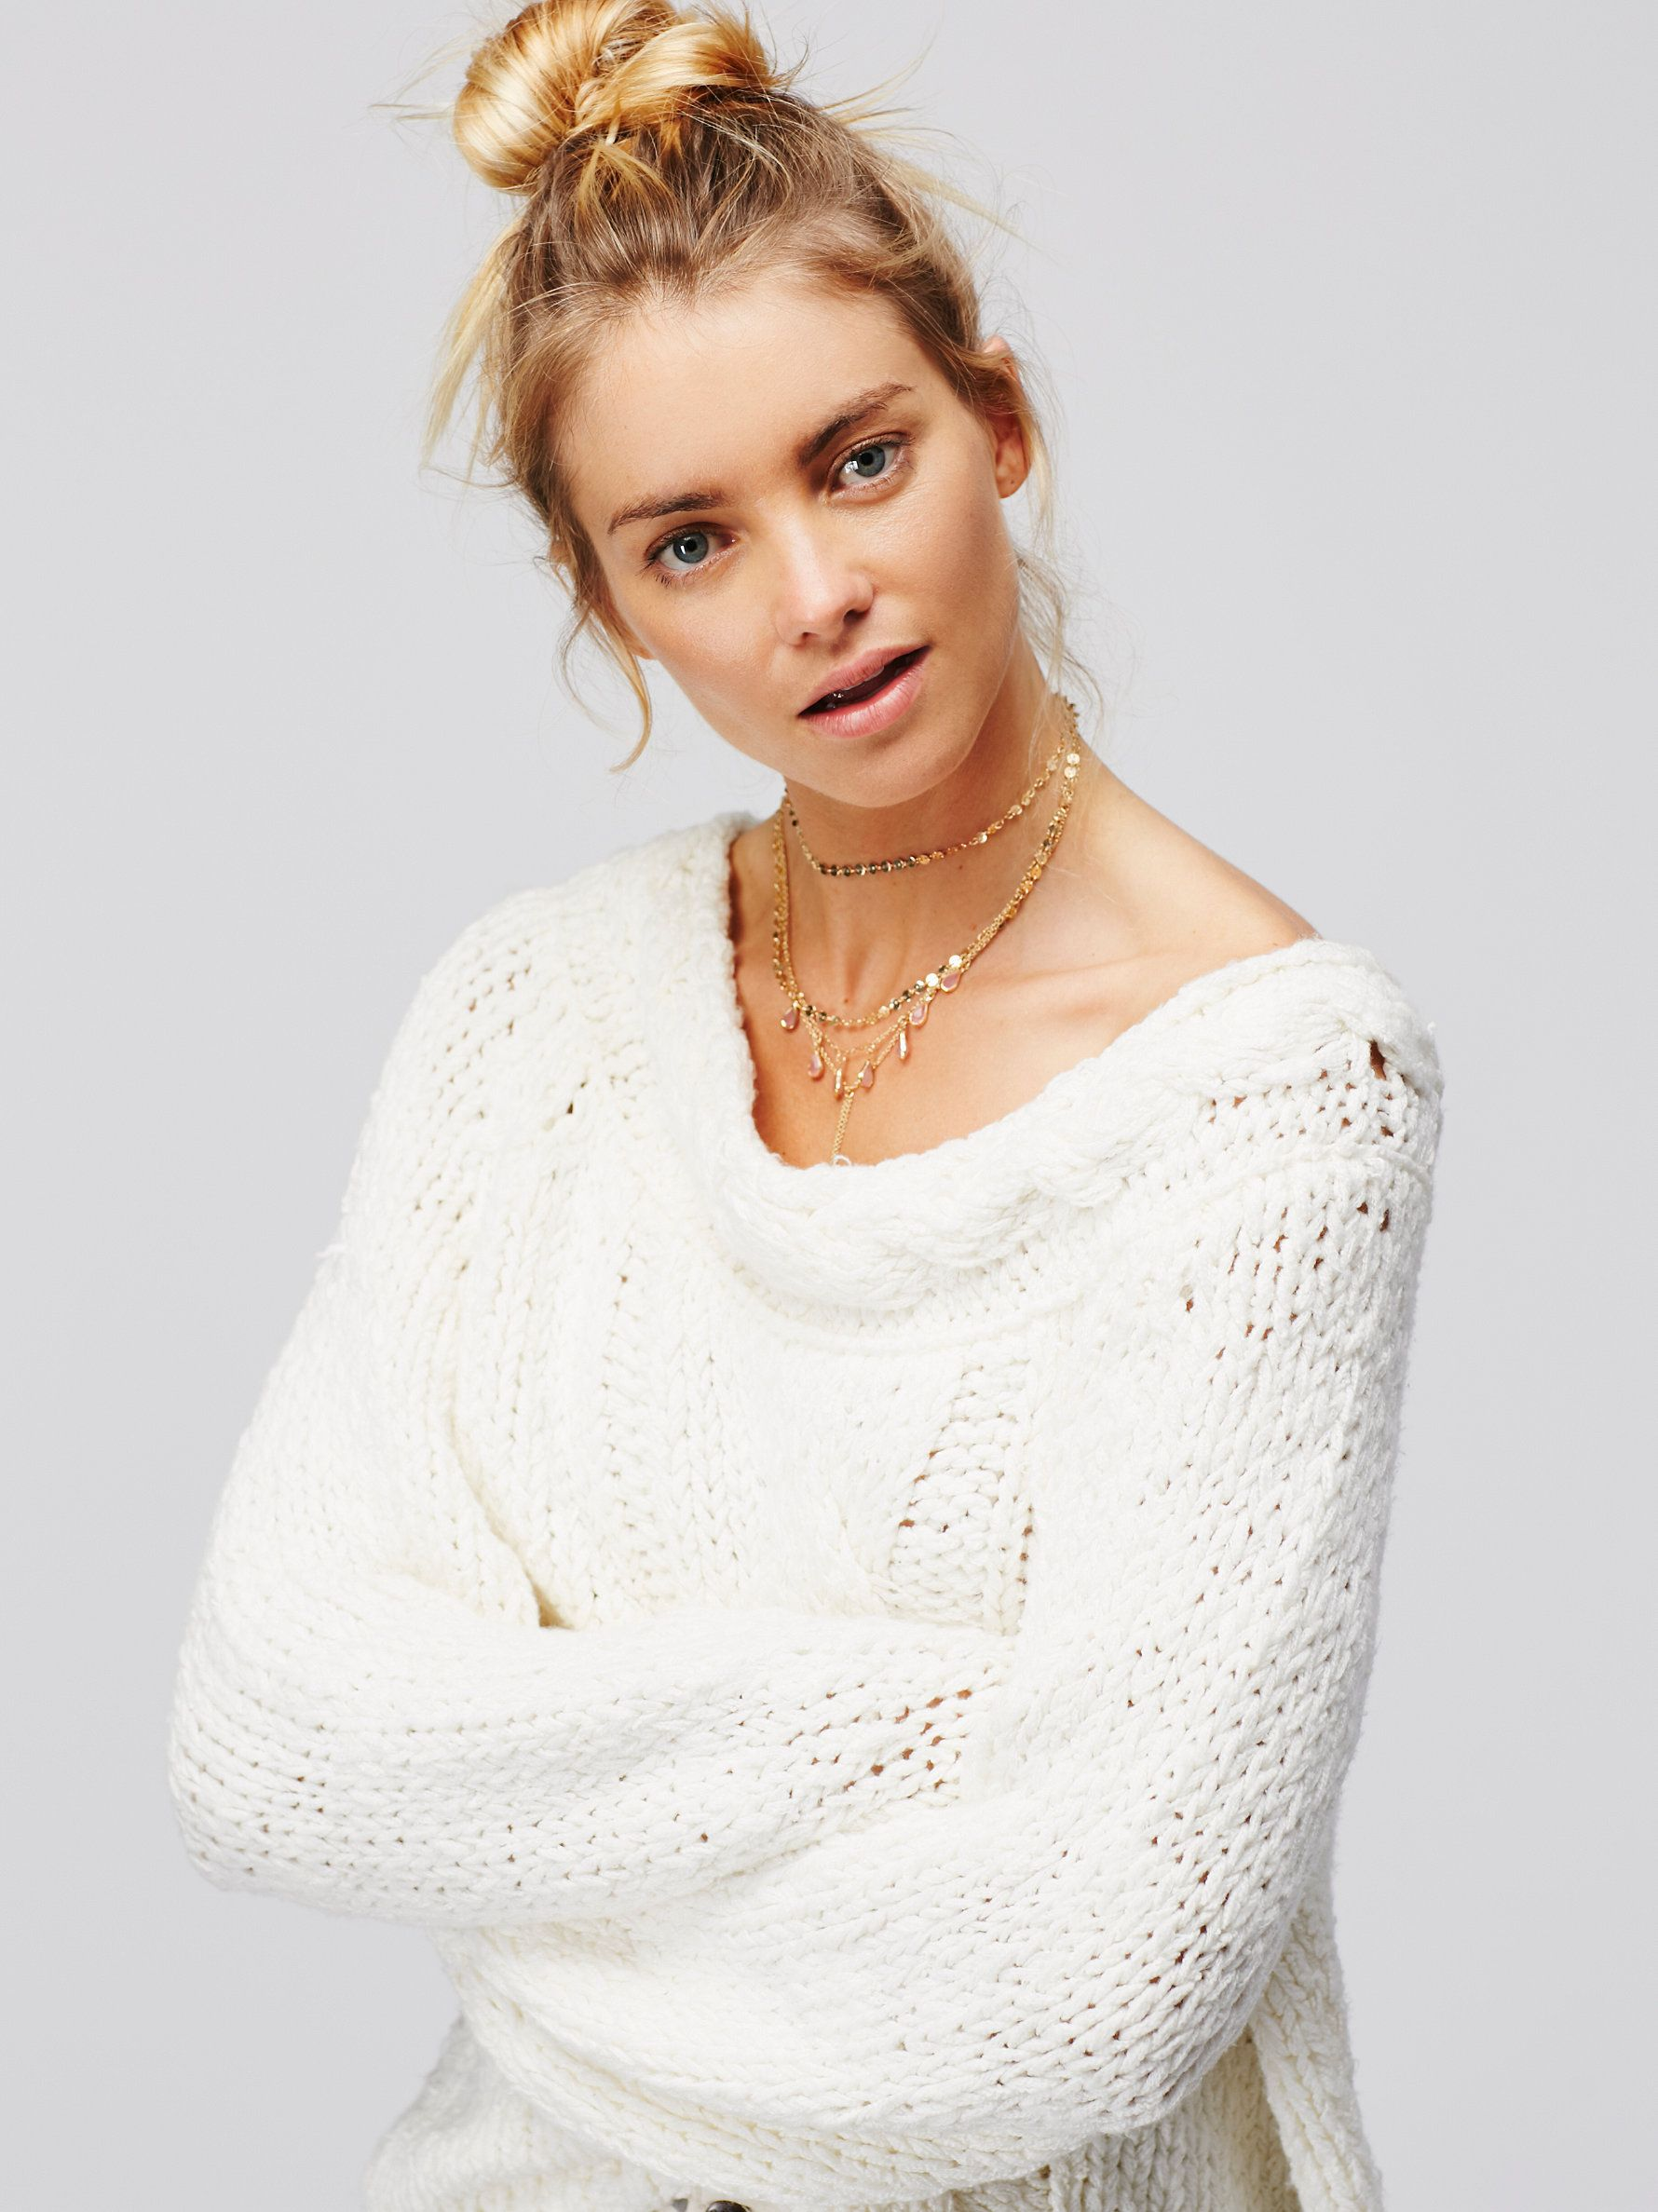 Jar of Hearts Pullover | Super soft chunky sweater with a wide neck that can be worn of-the-shoulder. In an oversized and effortless silhouette this pullover has cable knit detailing throughout.